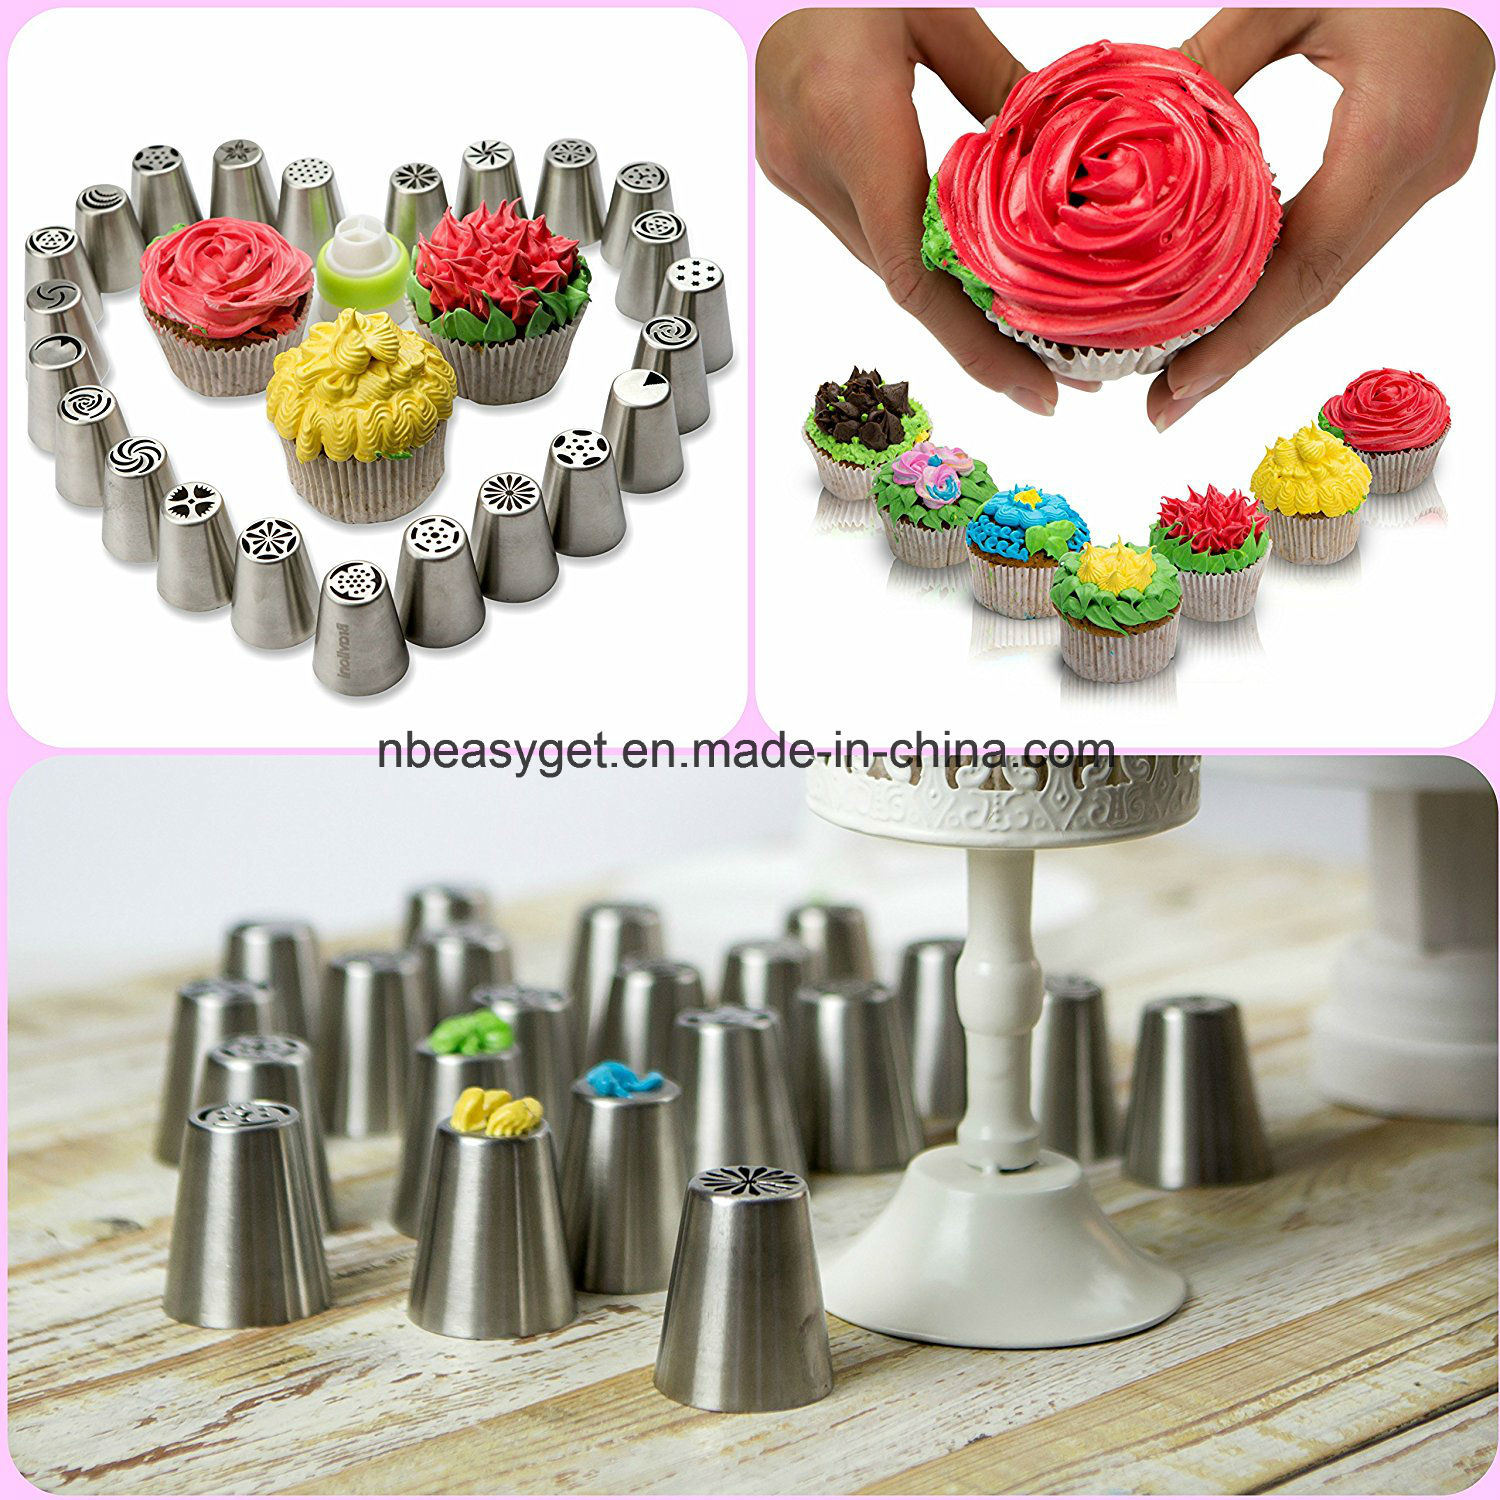 China Russian Piping Tips PCS Cake Baking Supplies